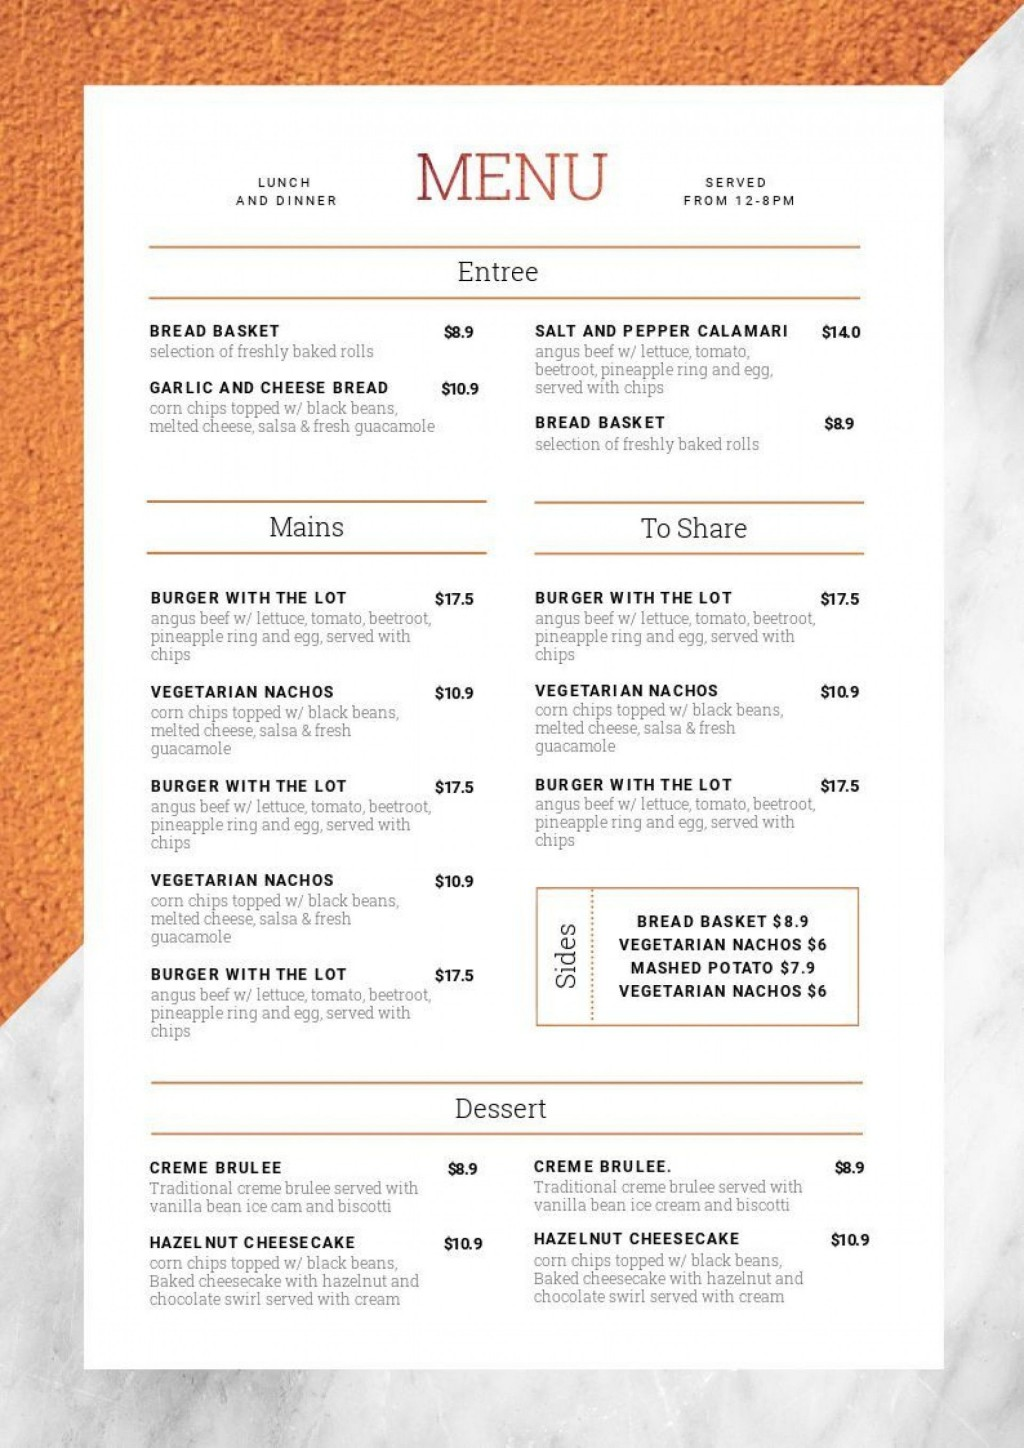 007 Fascinating Menu Template Free Download Word Concept  Dinner Party WeddingLarge